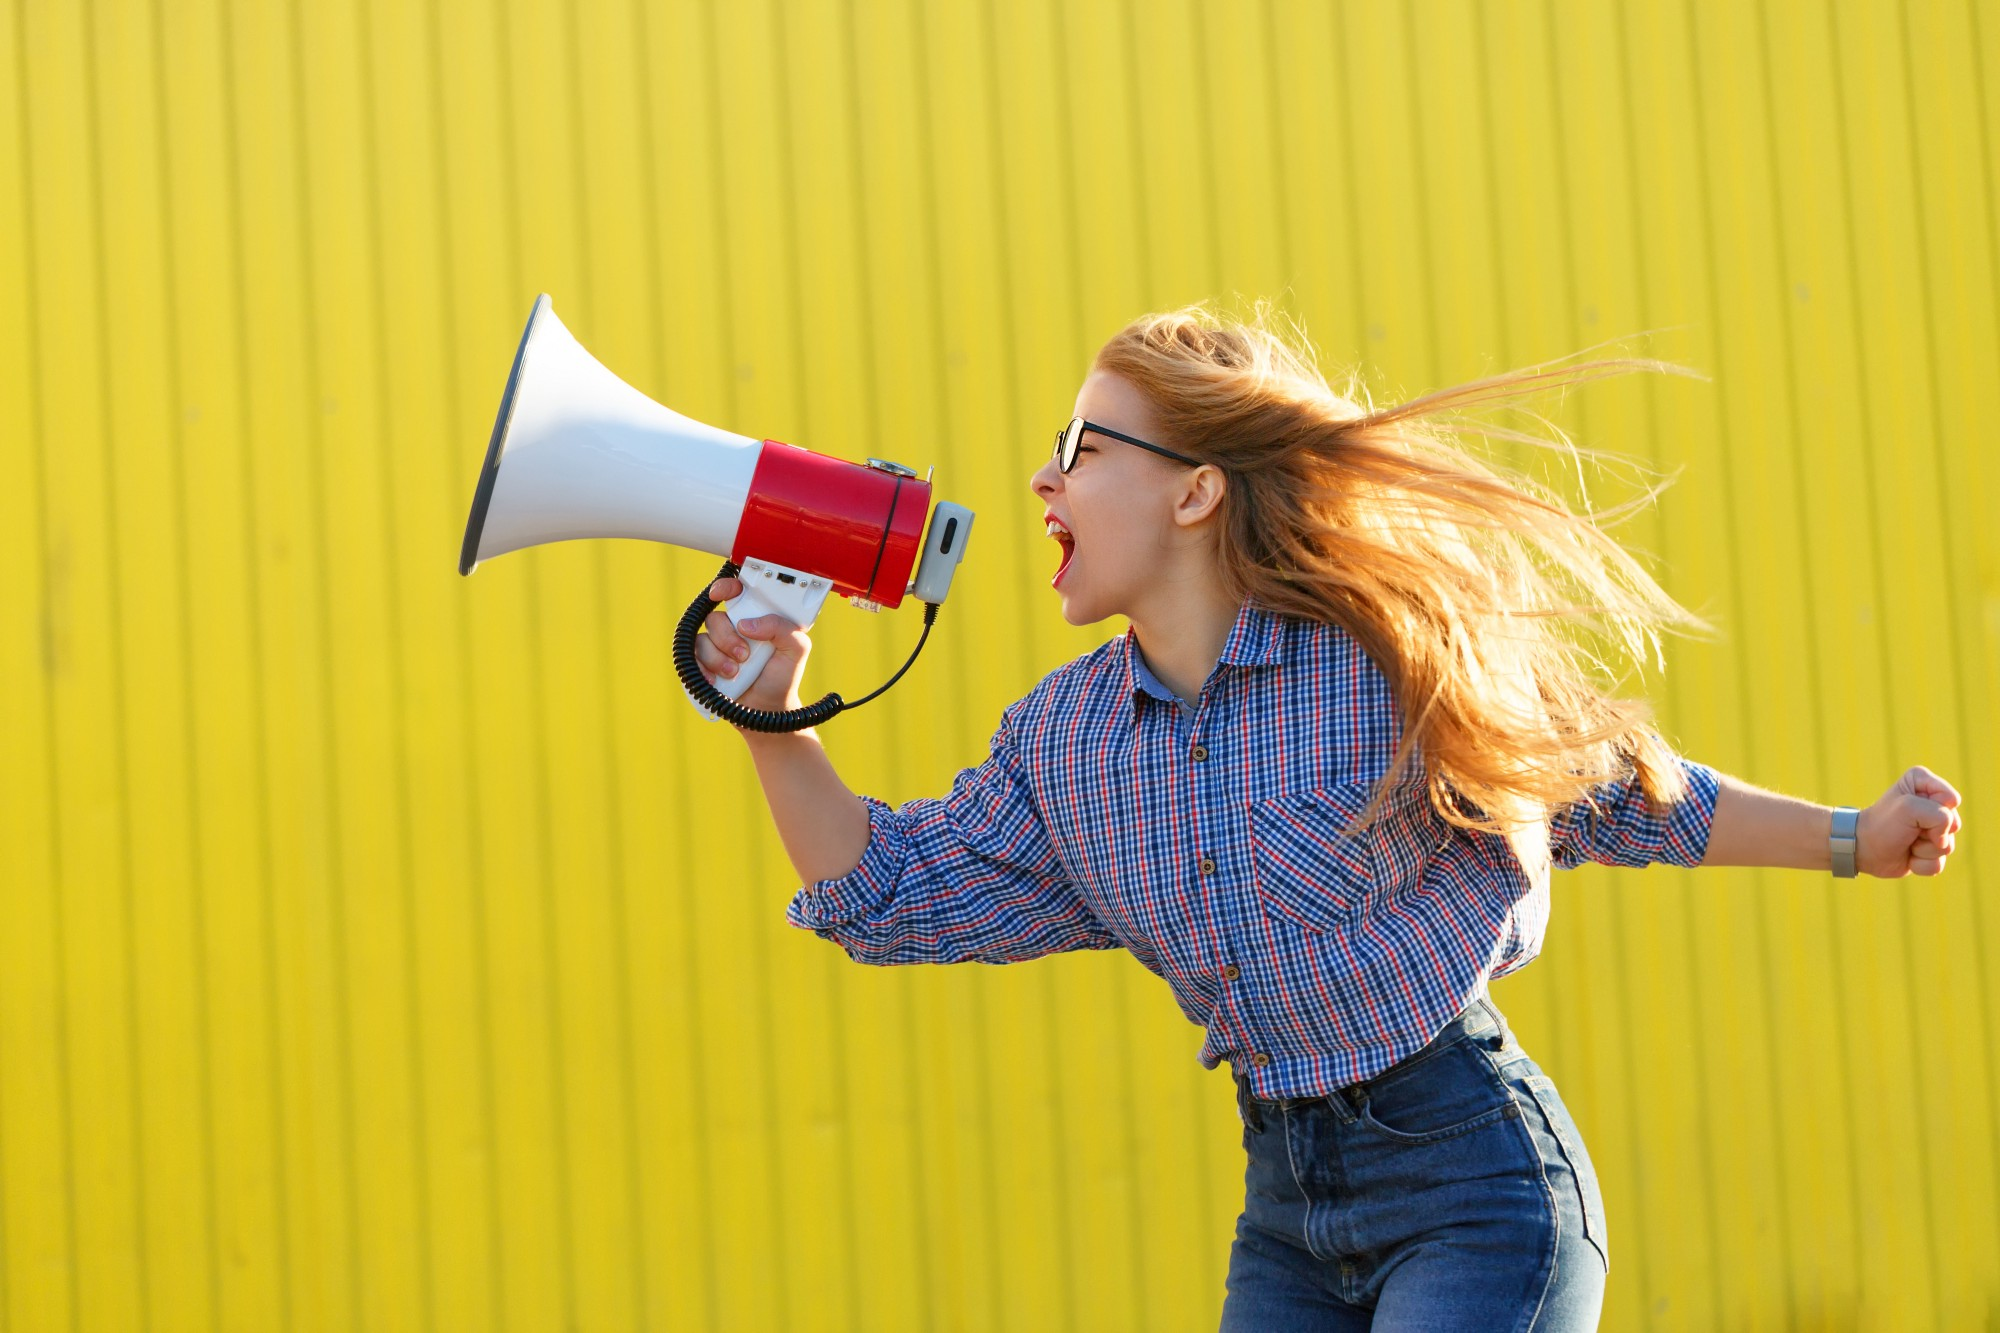 A person with long hair screaming into a megaphone.